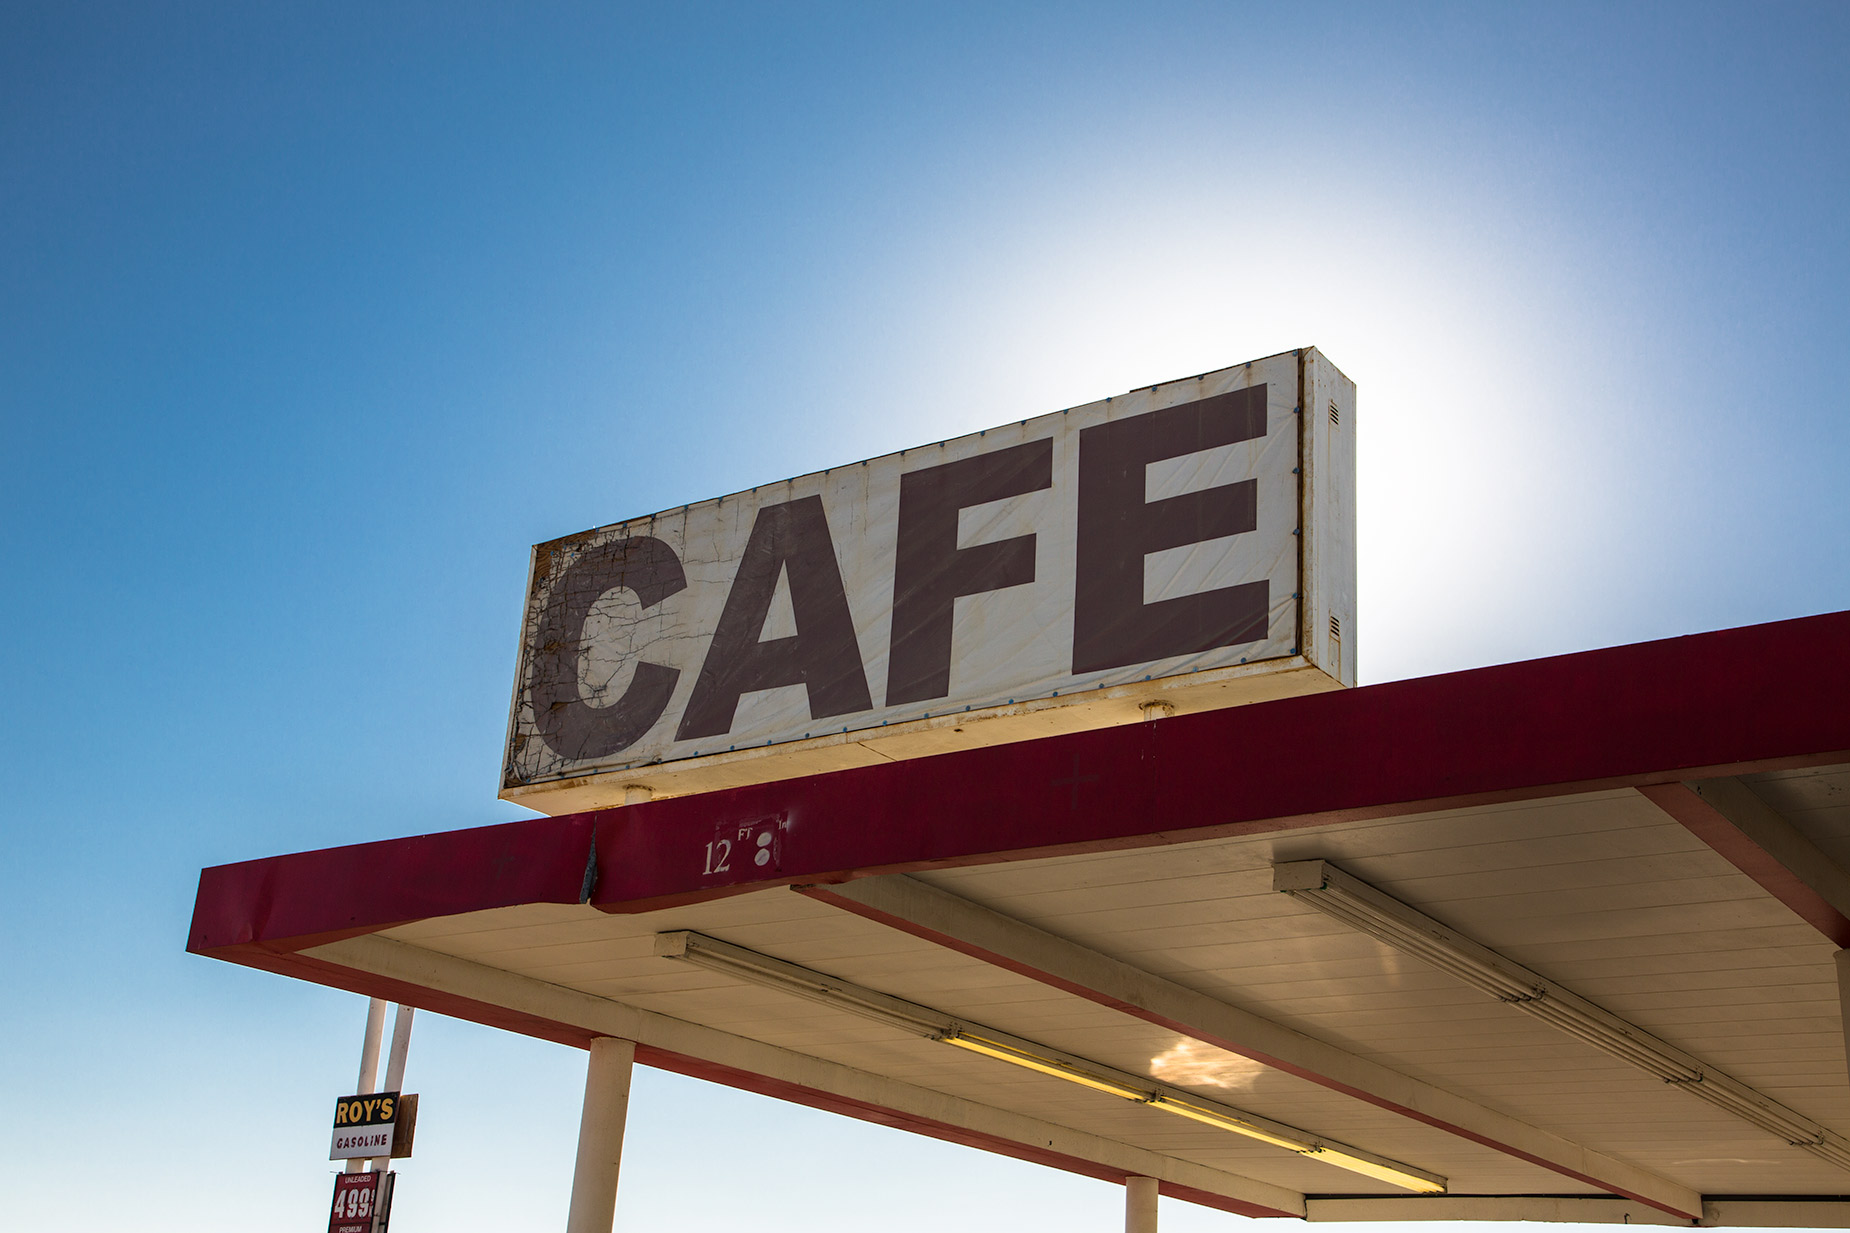 Cafe Vintage on the Route 66